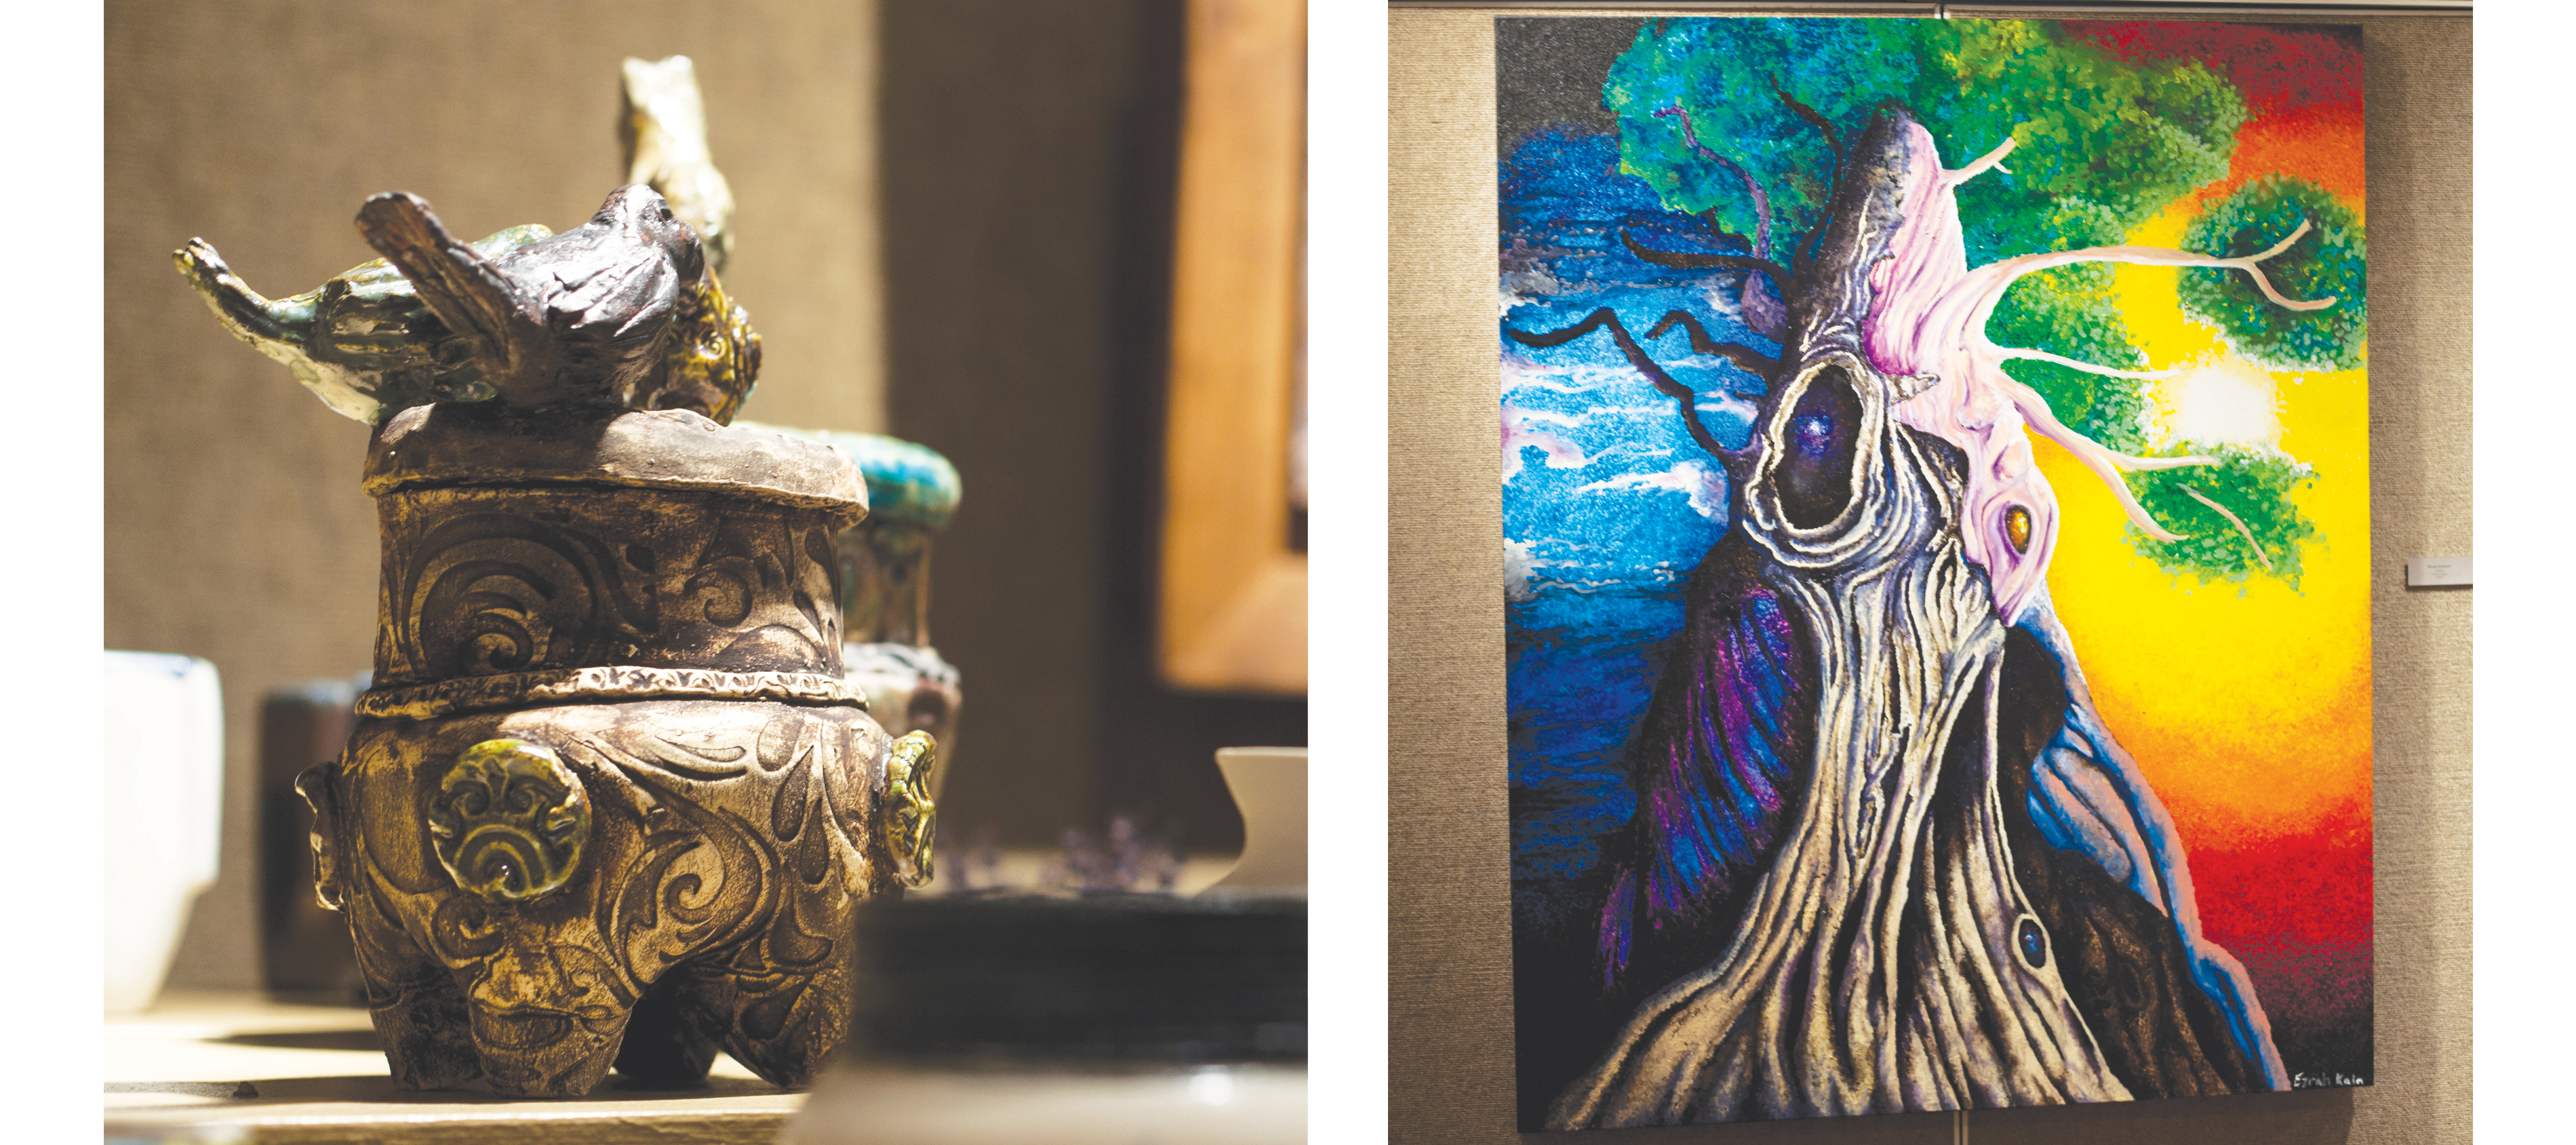 Left: Eltit by Zudo Nihn, Right: Duality by Ezrah Johnson | Photos by Vince Domingo